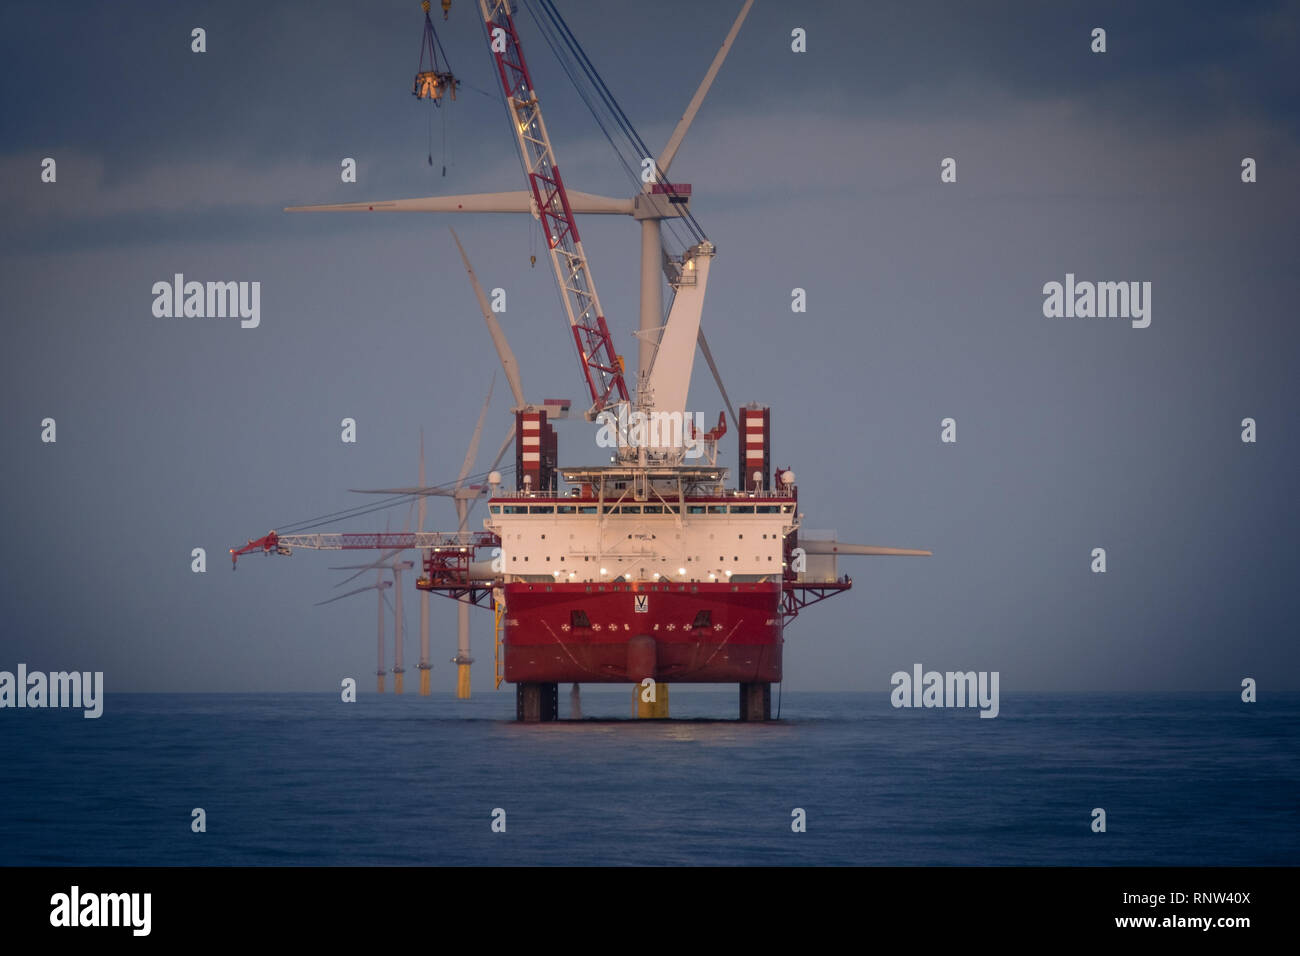 The wind turbine installation and maintenance jack-up vessel conducting maintenance works on London Array Offshore Wind Farm - Stock Image